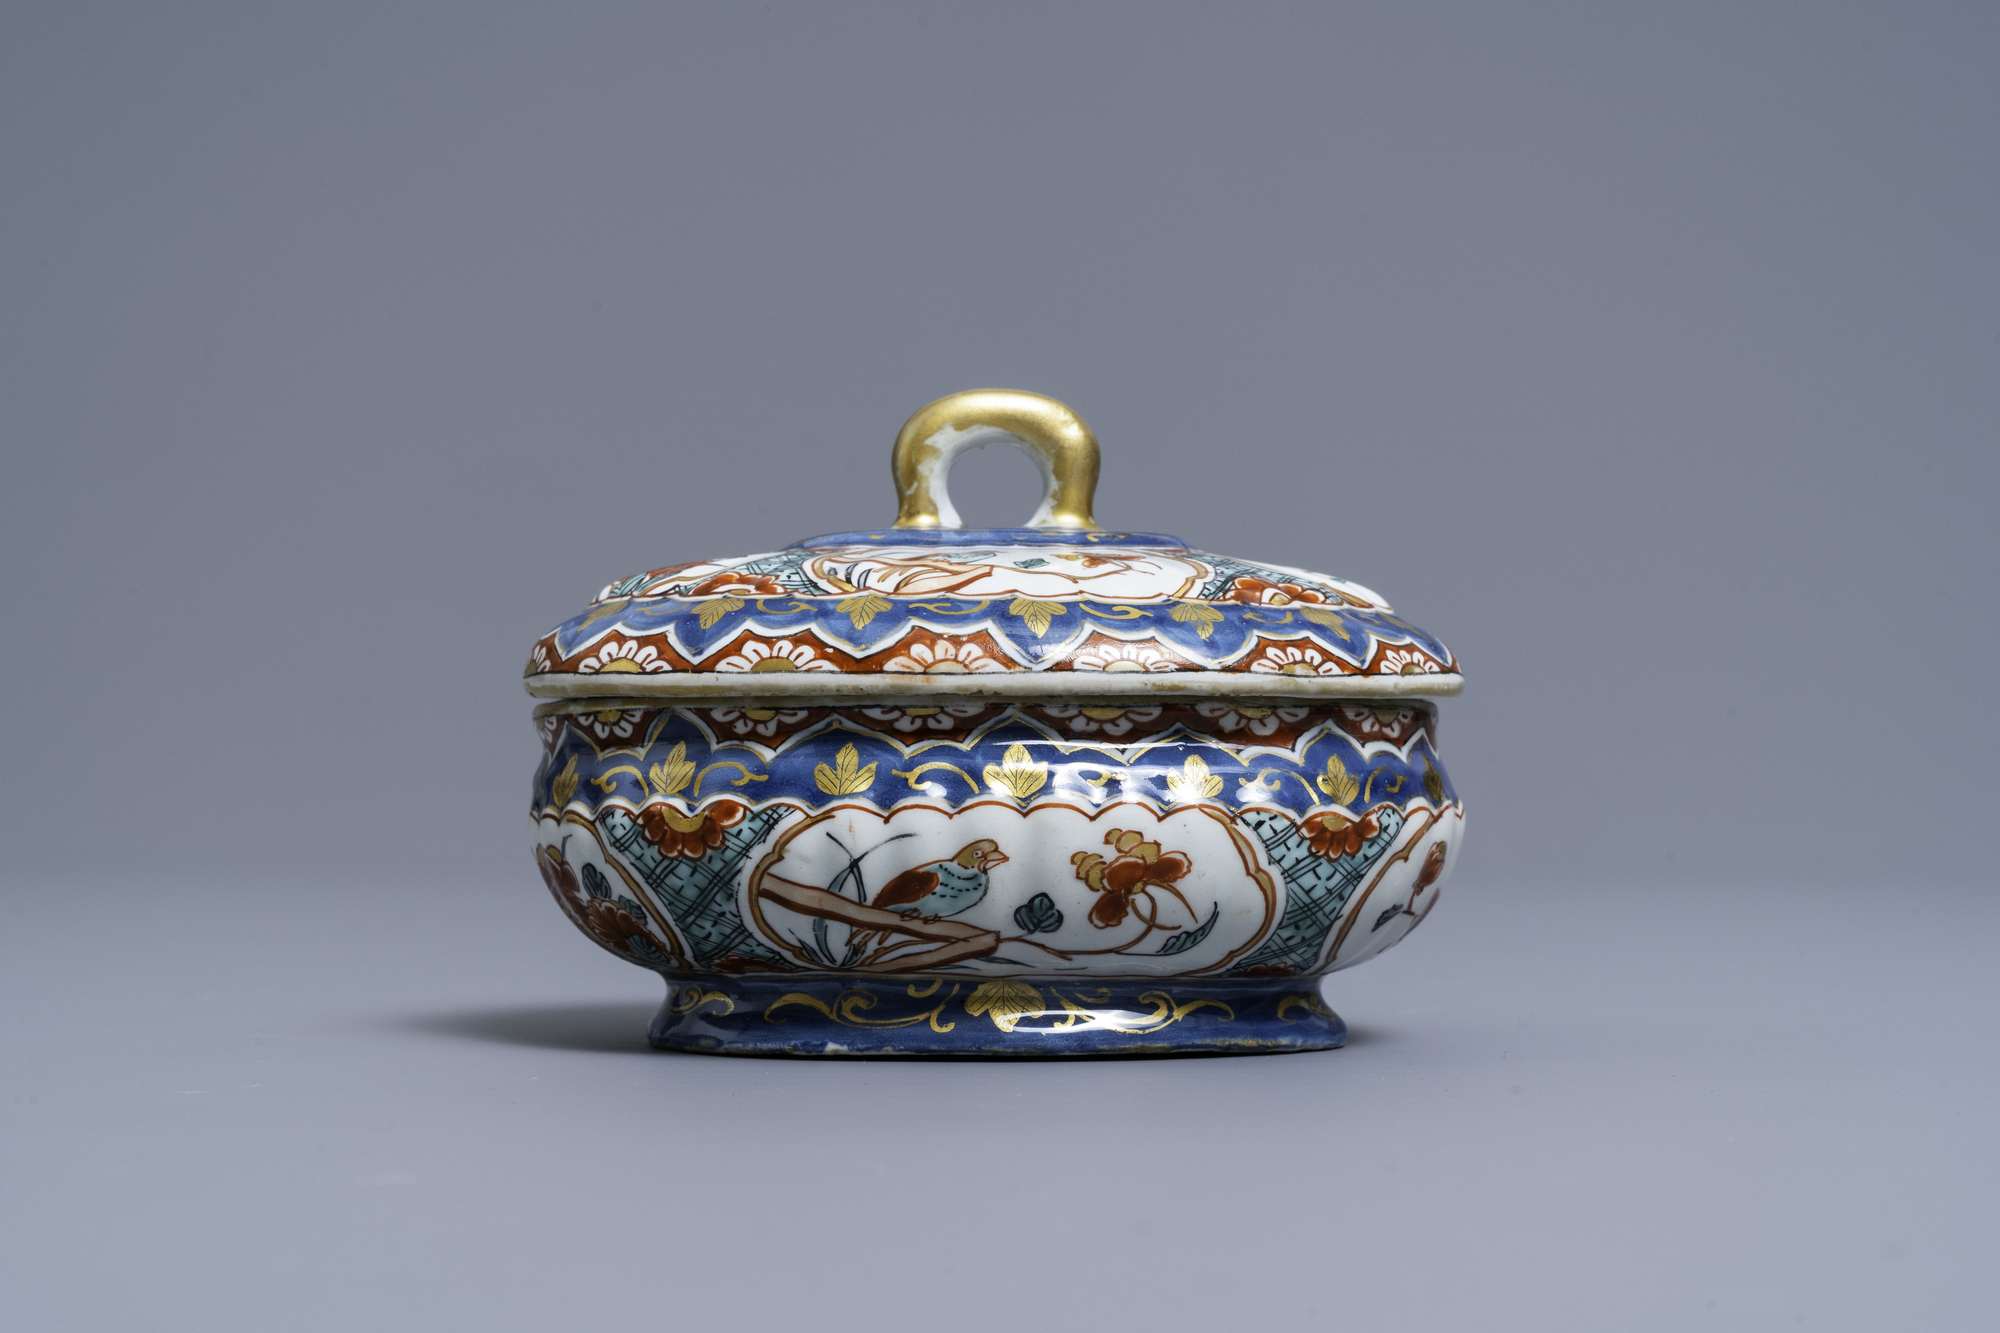 A polychrome and gilded Dutch Delft spice box and cover, early 18th C. - Image 2 of 7